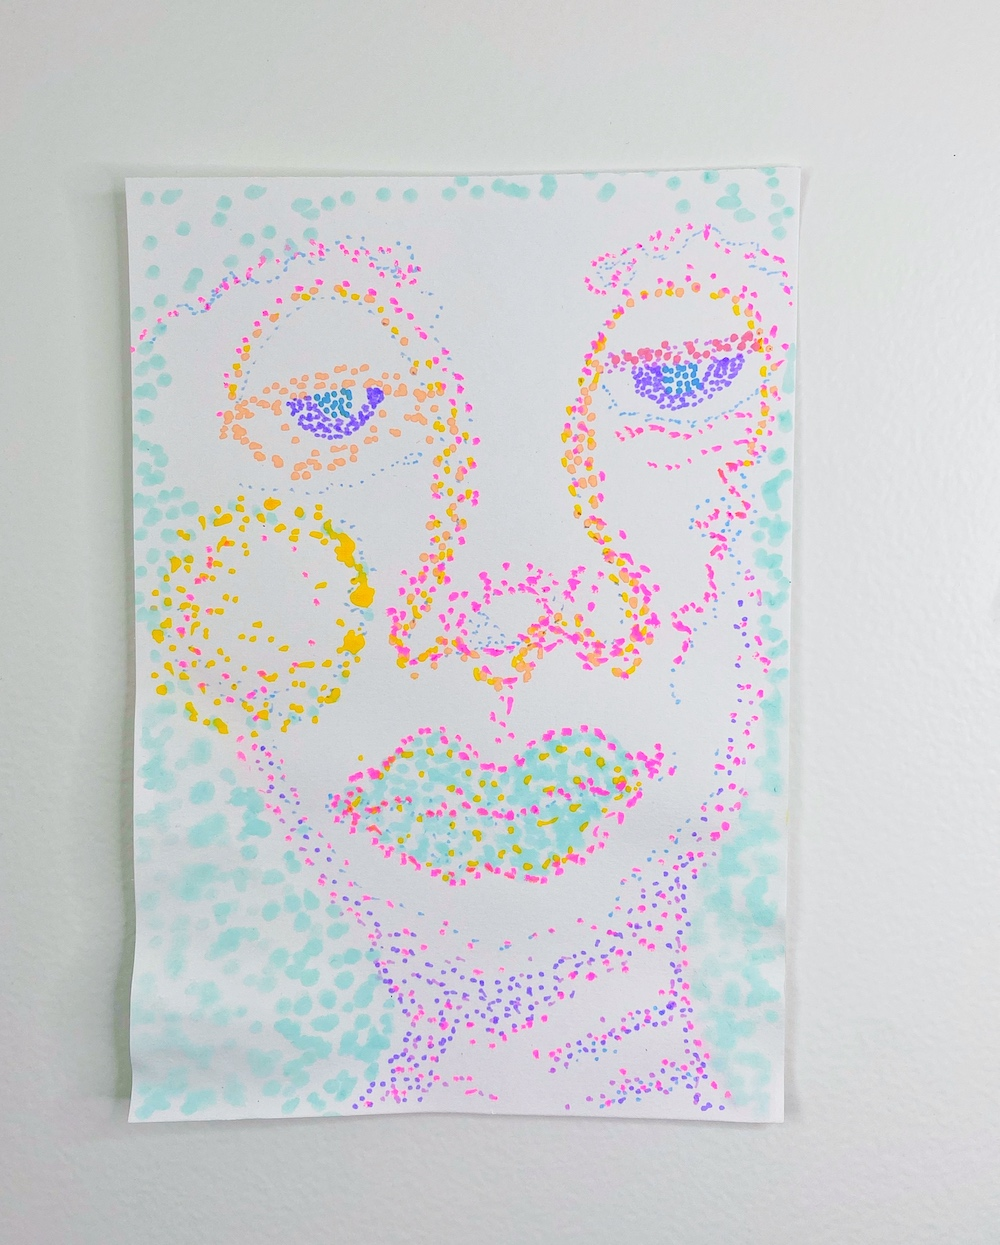 montie, Is this like a Noxzema commercial or what #2, acrylic paint pen on paper